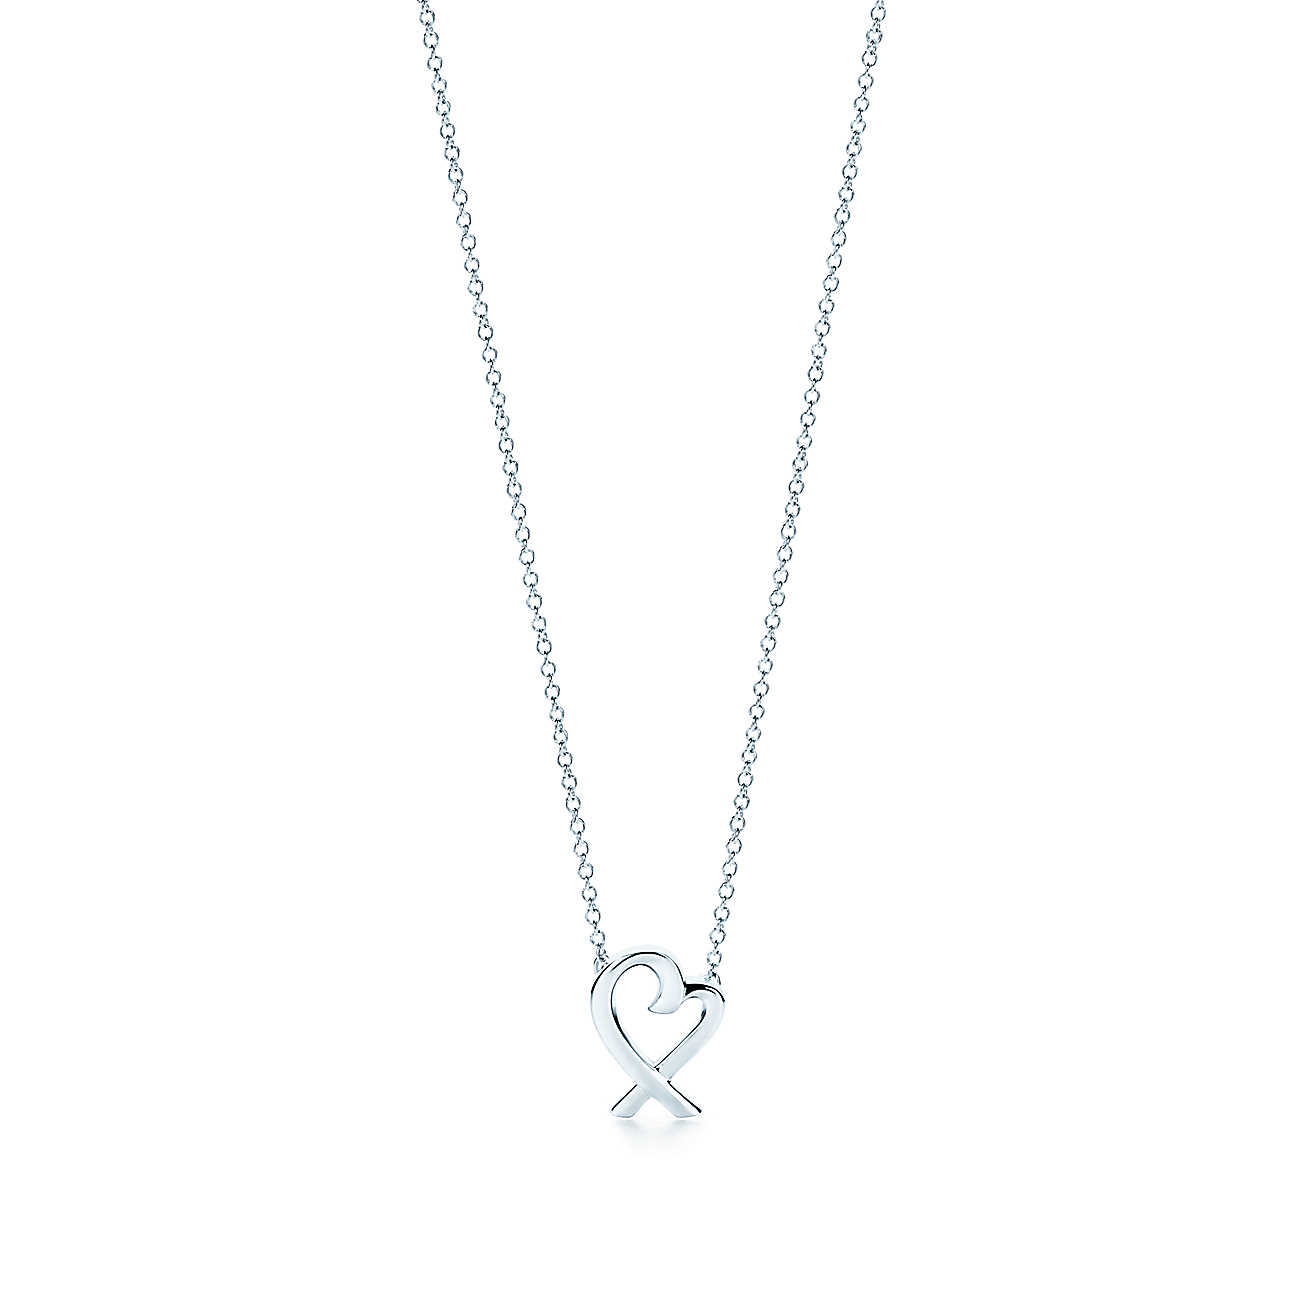 Tiffany co 925 sterling silver paloma picasso loving heart 925 sterling silver paloma picasso loving heart pendant tiffany co buy at truefacet aloadofball Images